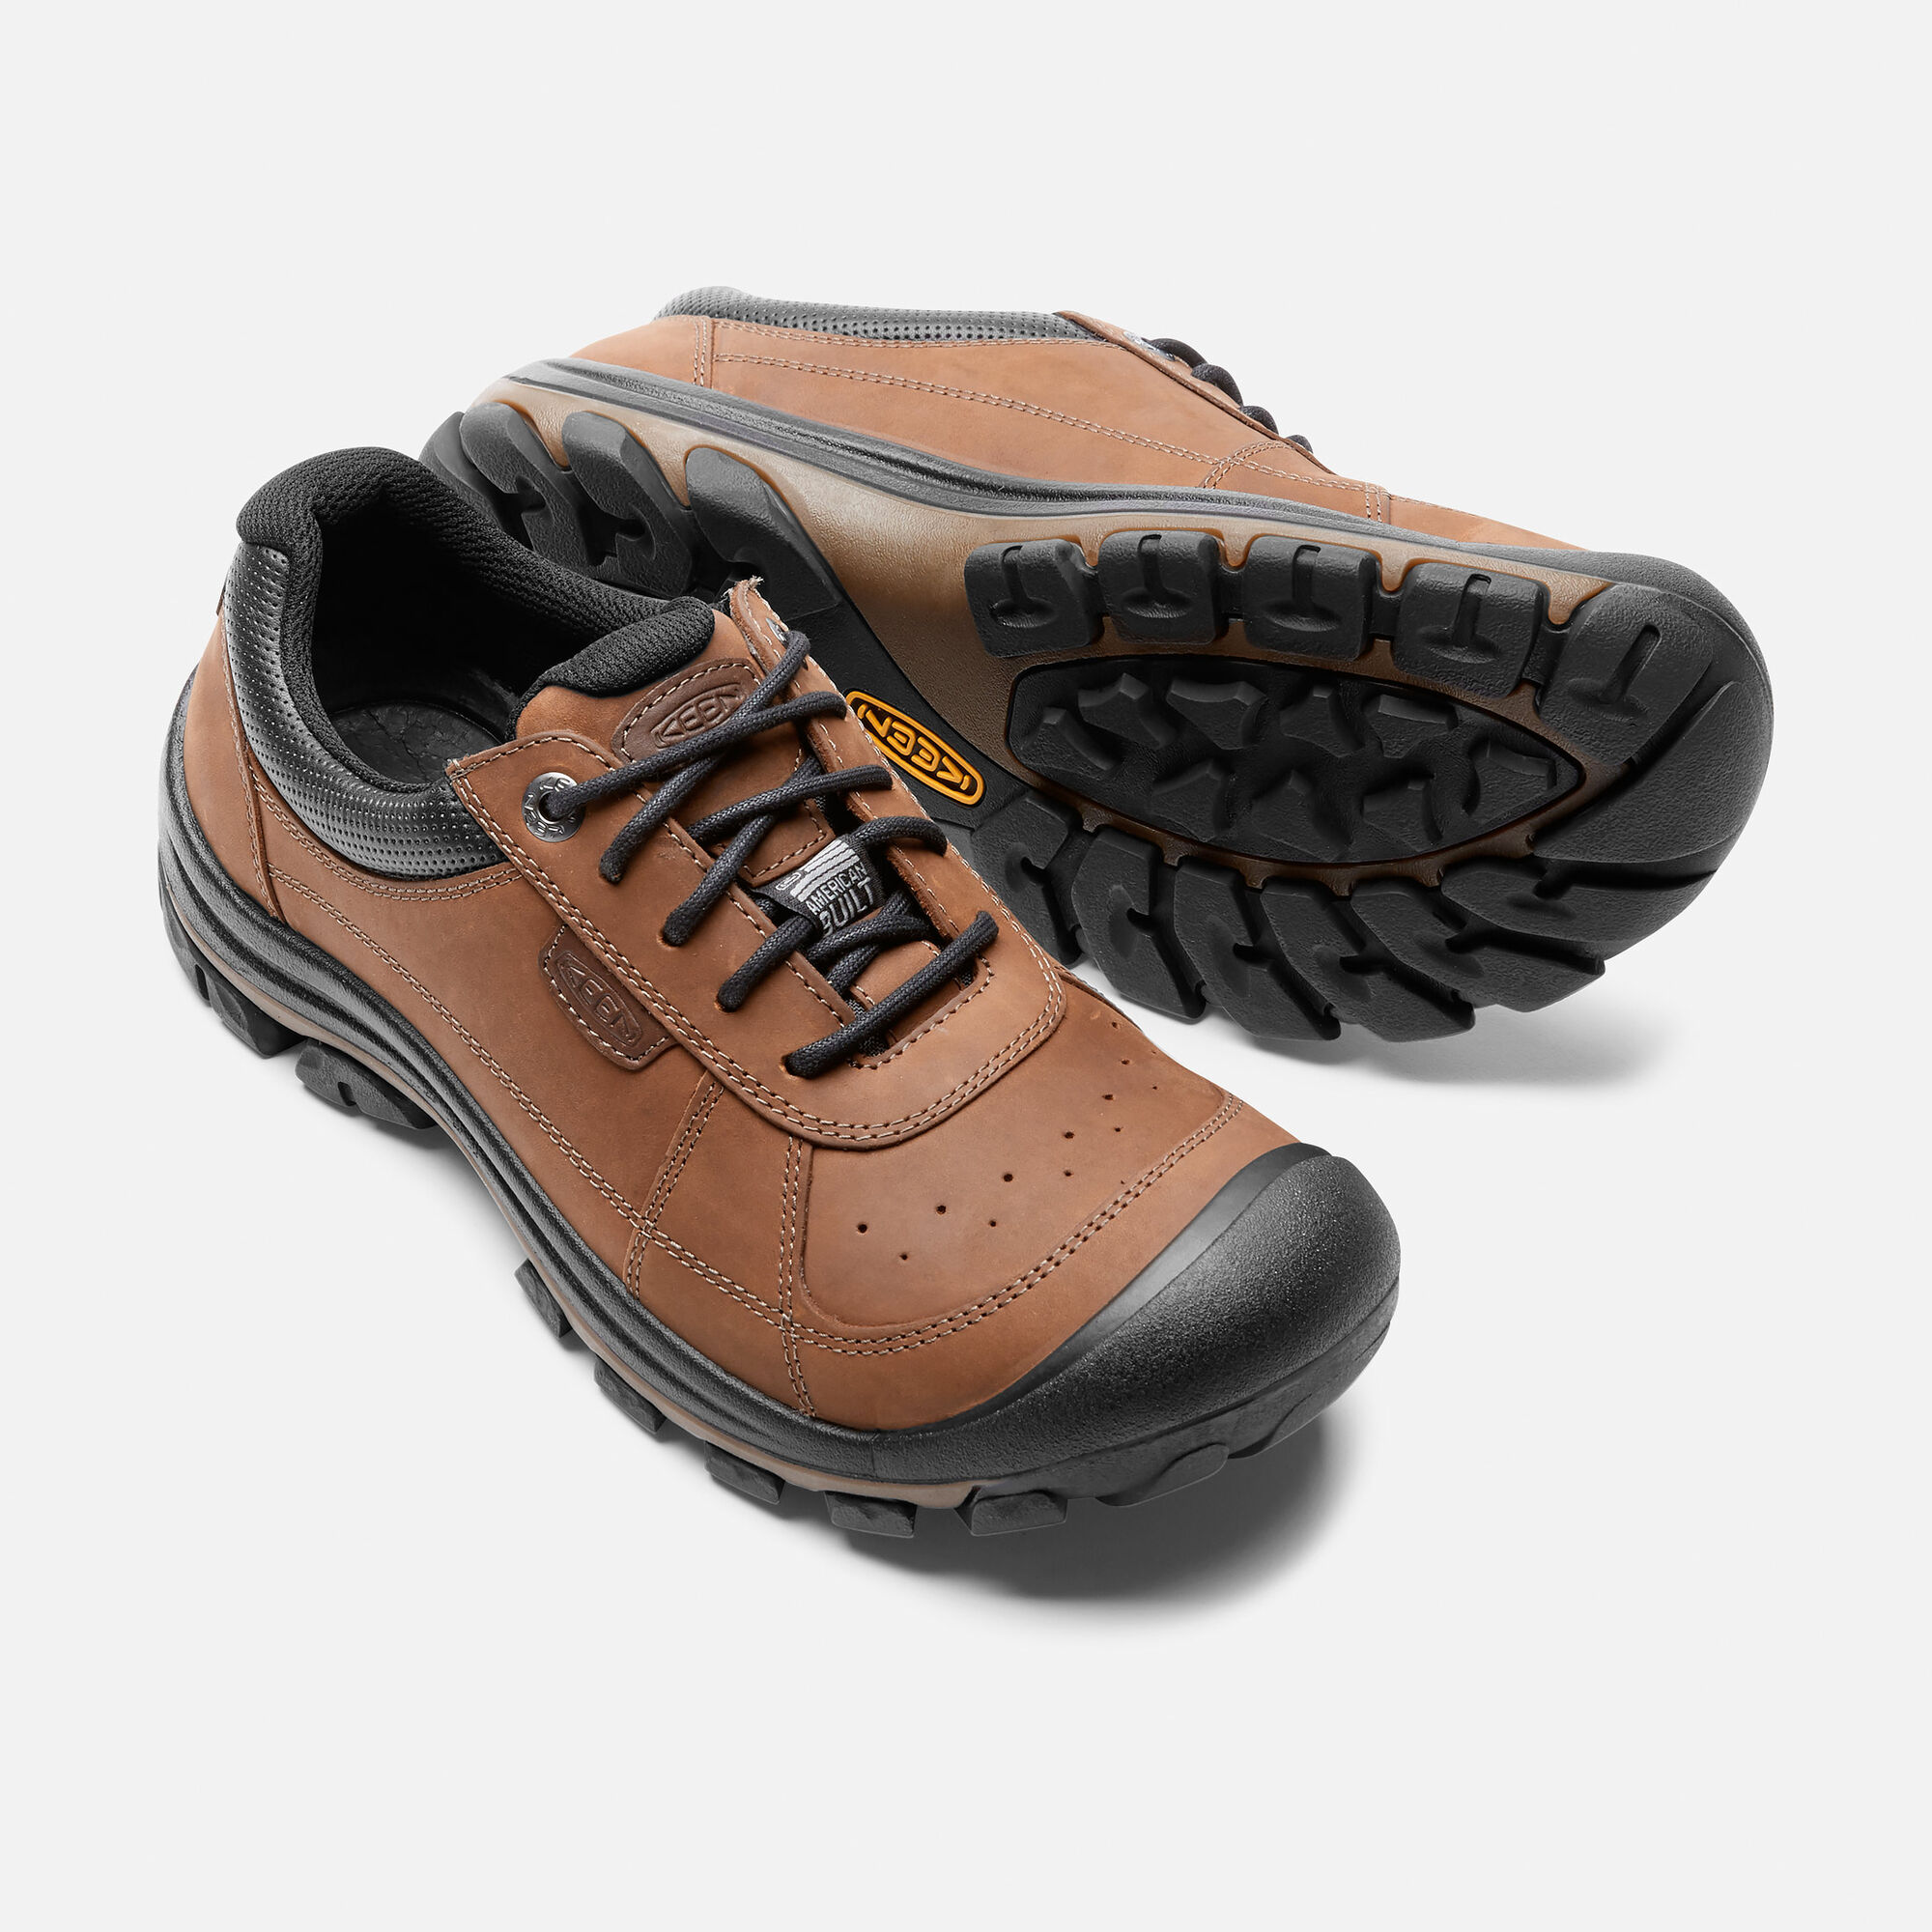 piedmont men Find helpful customer reviews and review ratings for keen men's piedmont lace shoe at amazoncom read honest and unbiased product reviews from our users.